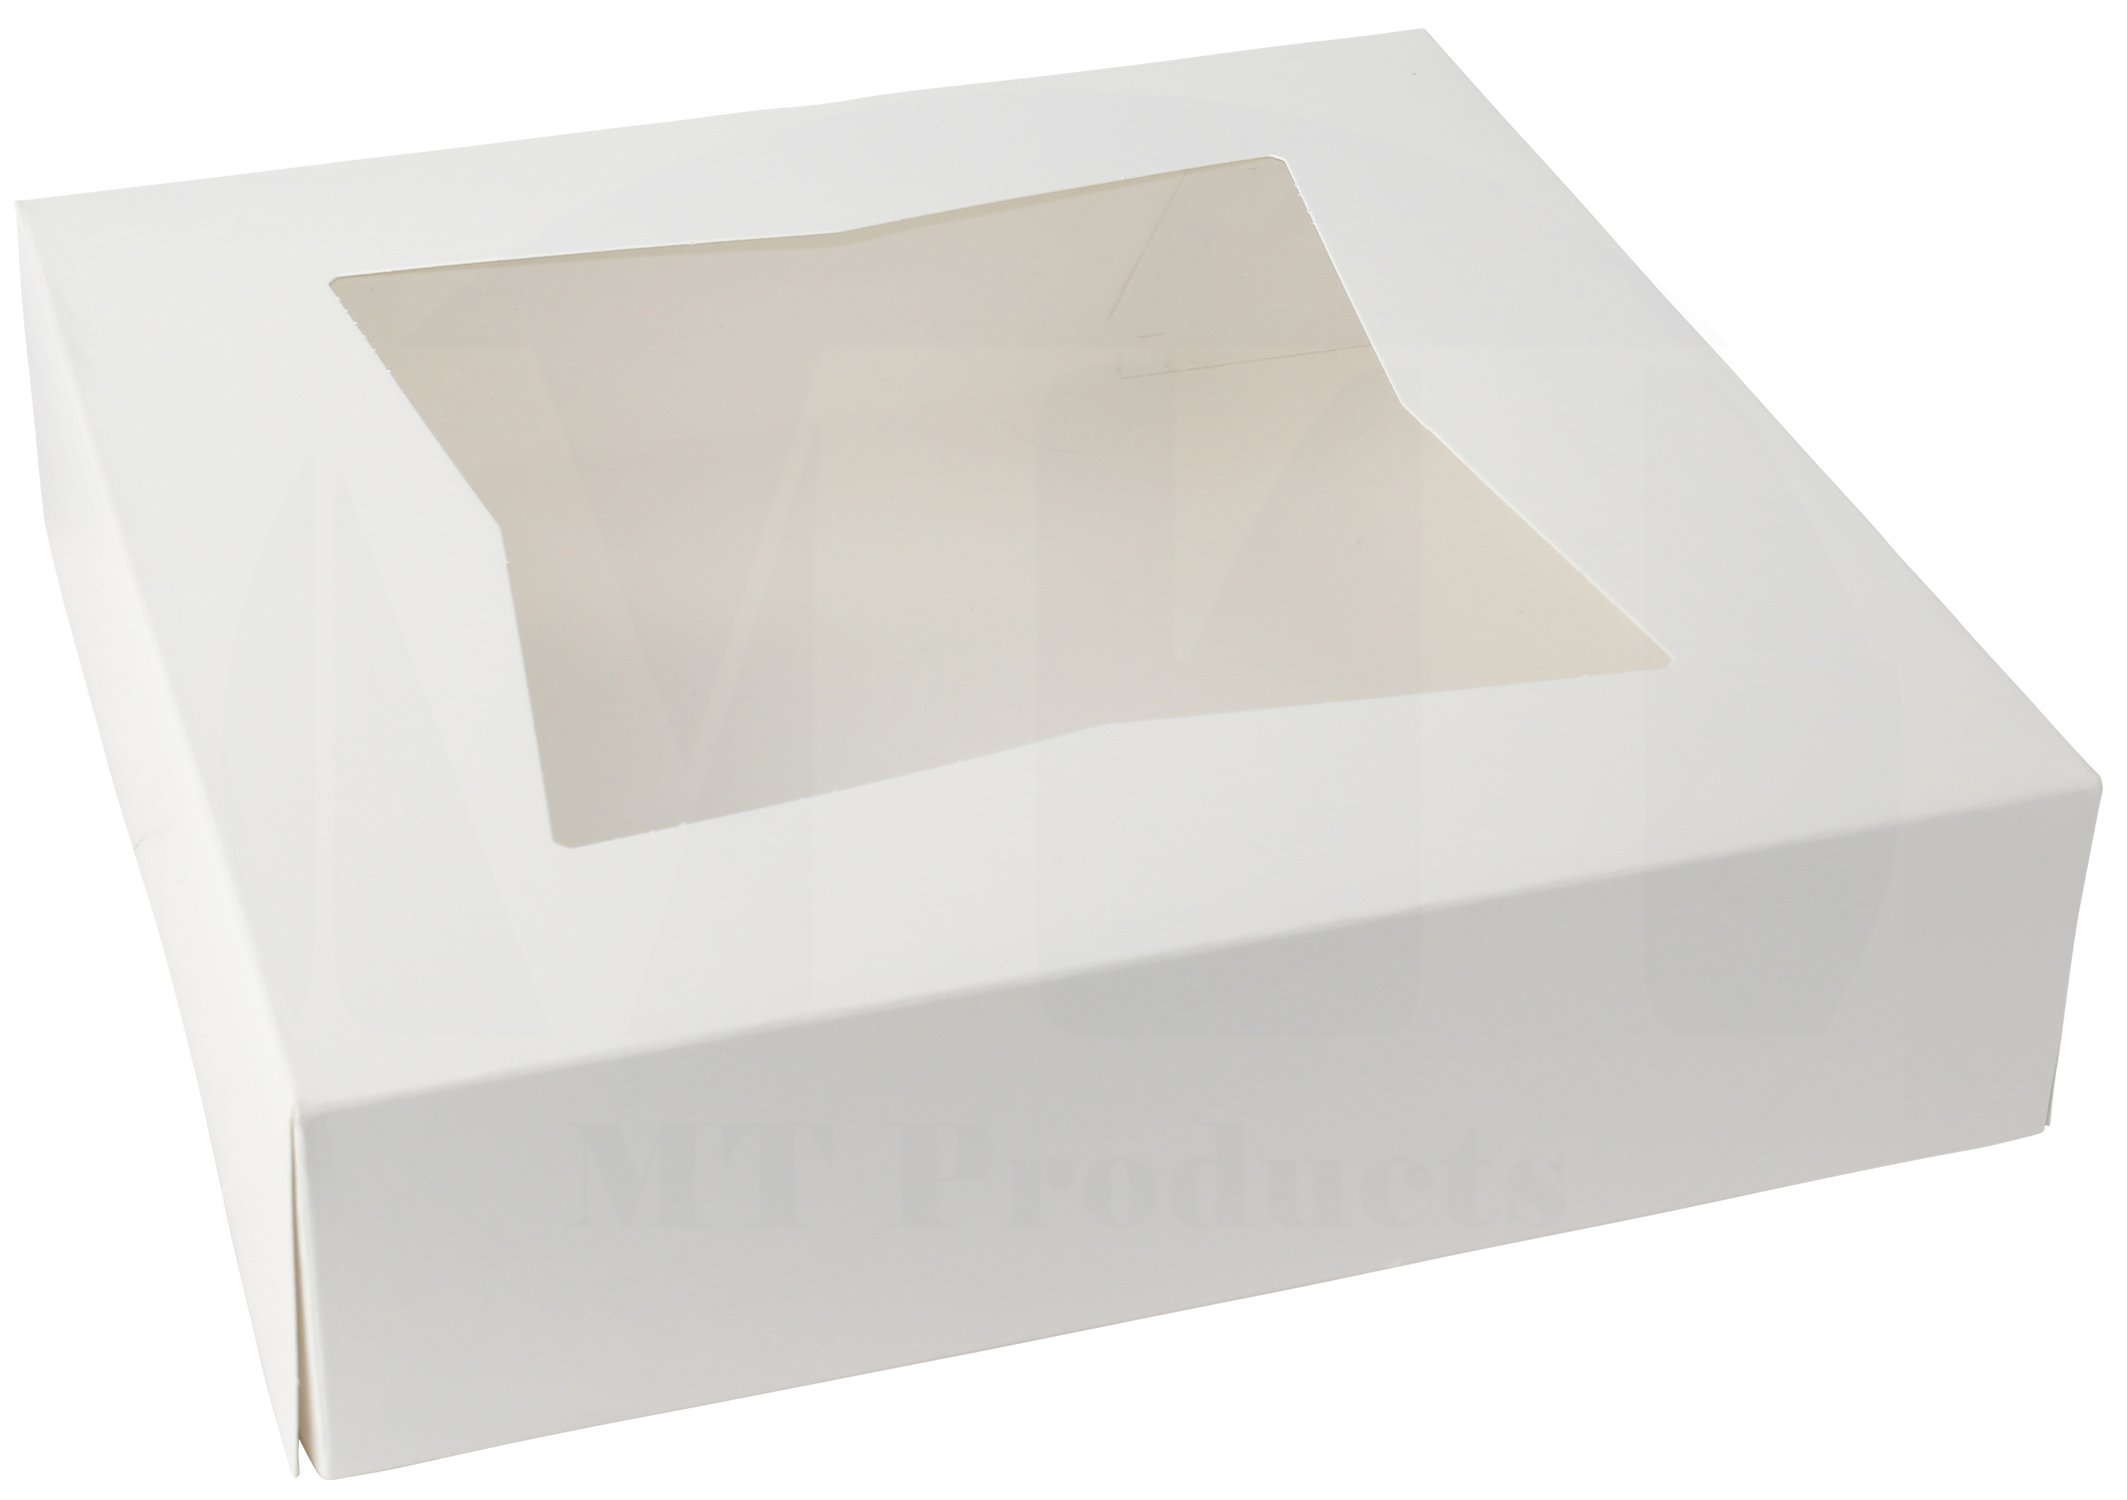 10'' Length x 10'' Width x 2 1/2'' Height White Kraft Paperboard Auto-Popup Window Pie/Bakery Box by MT Products (Pack of 15)